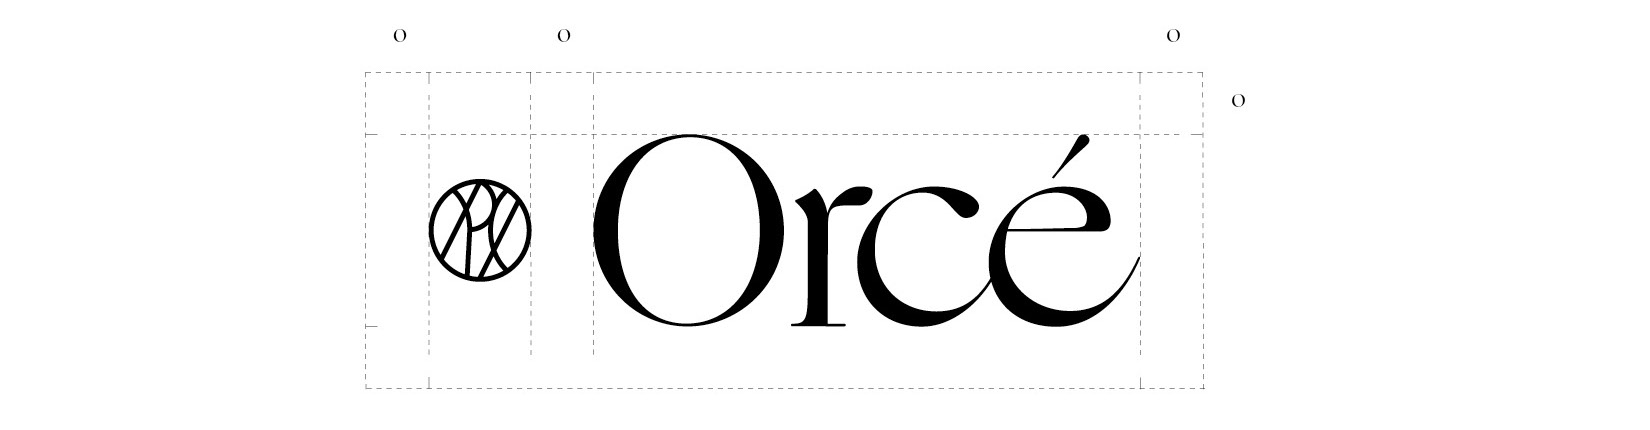 Orce cosmetics brand, logo created and designed by DTE Studio.